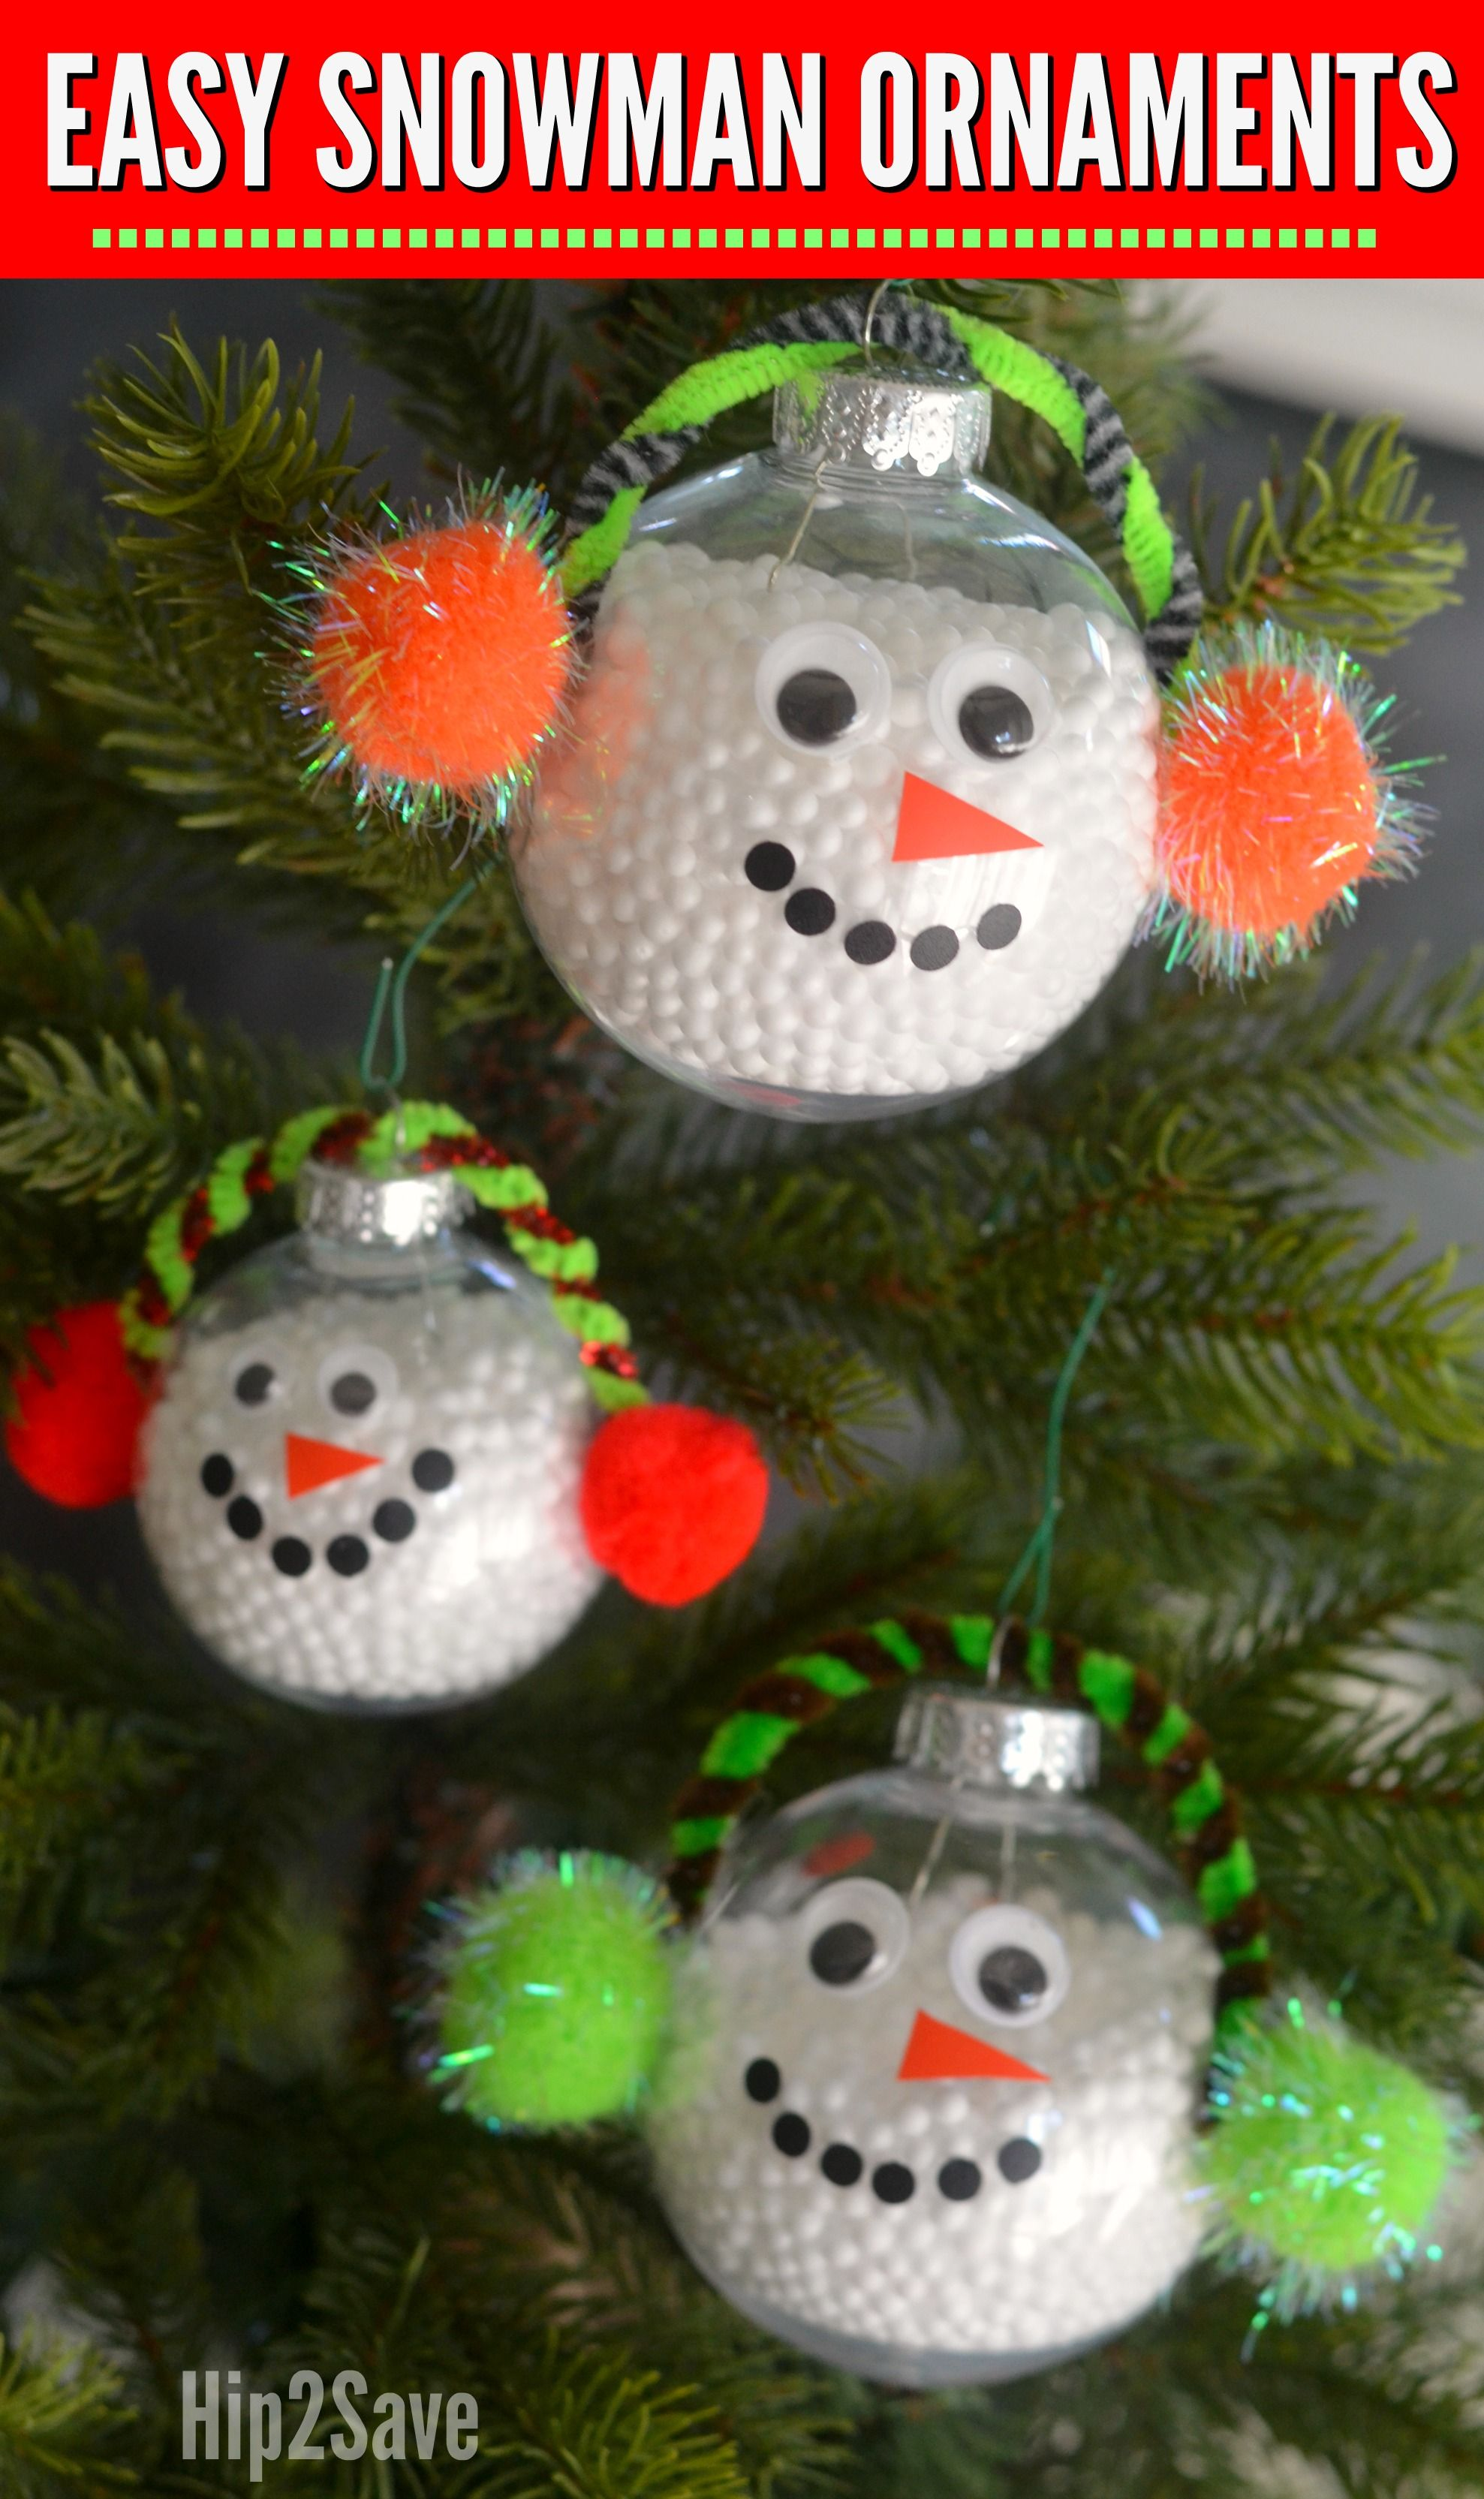 Turn Clear Ornaments Into A Cute Snowman To Hang On The Tree With This Easy Di Kids Christmas Ornaments Christmas Ornament Crafts Snowman Christmas Decorations